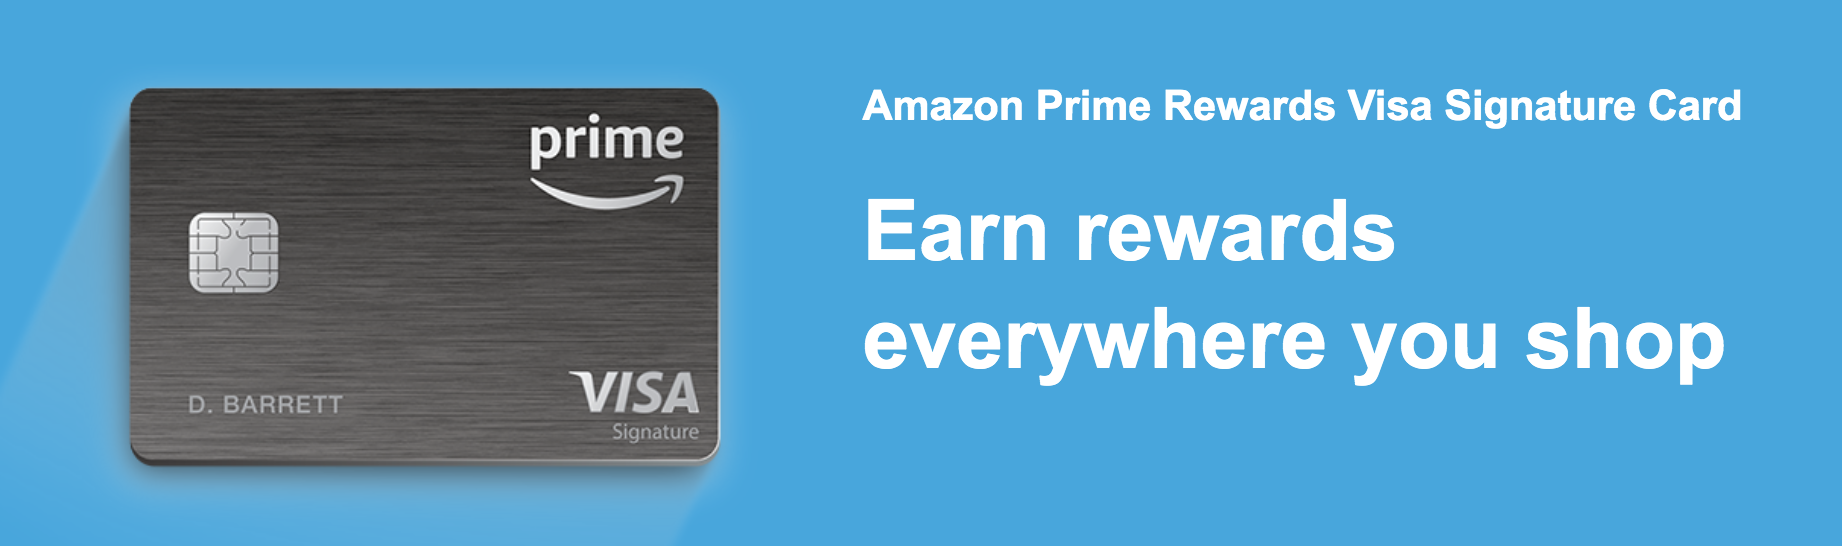 Amazon Visa Rewards Signature Card